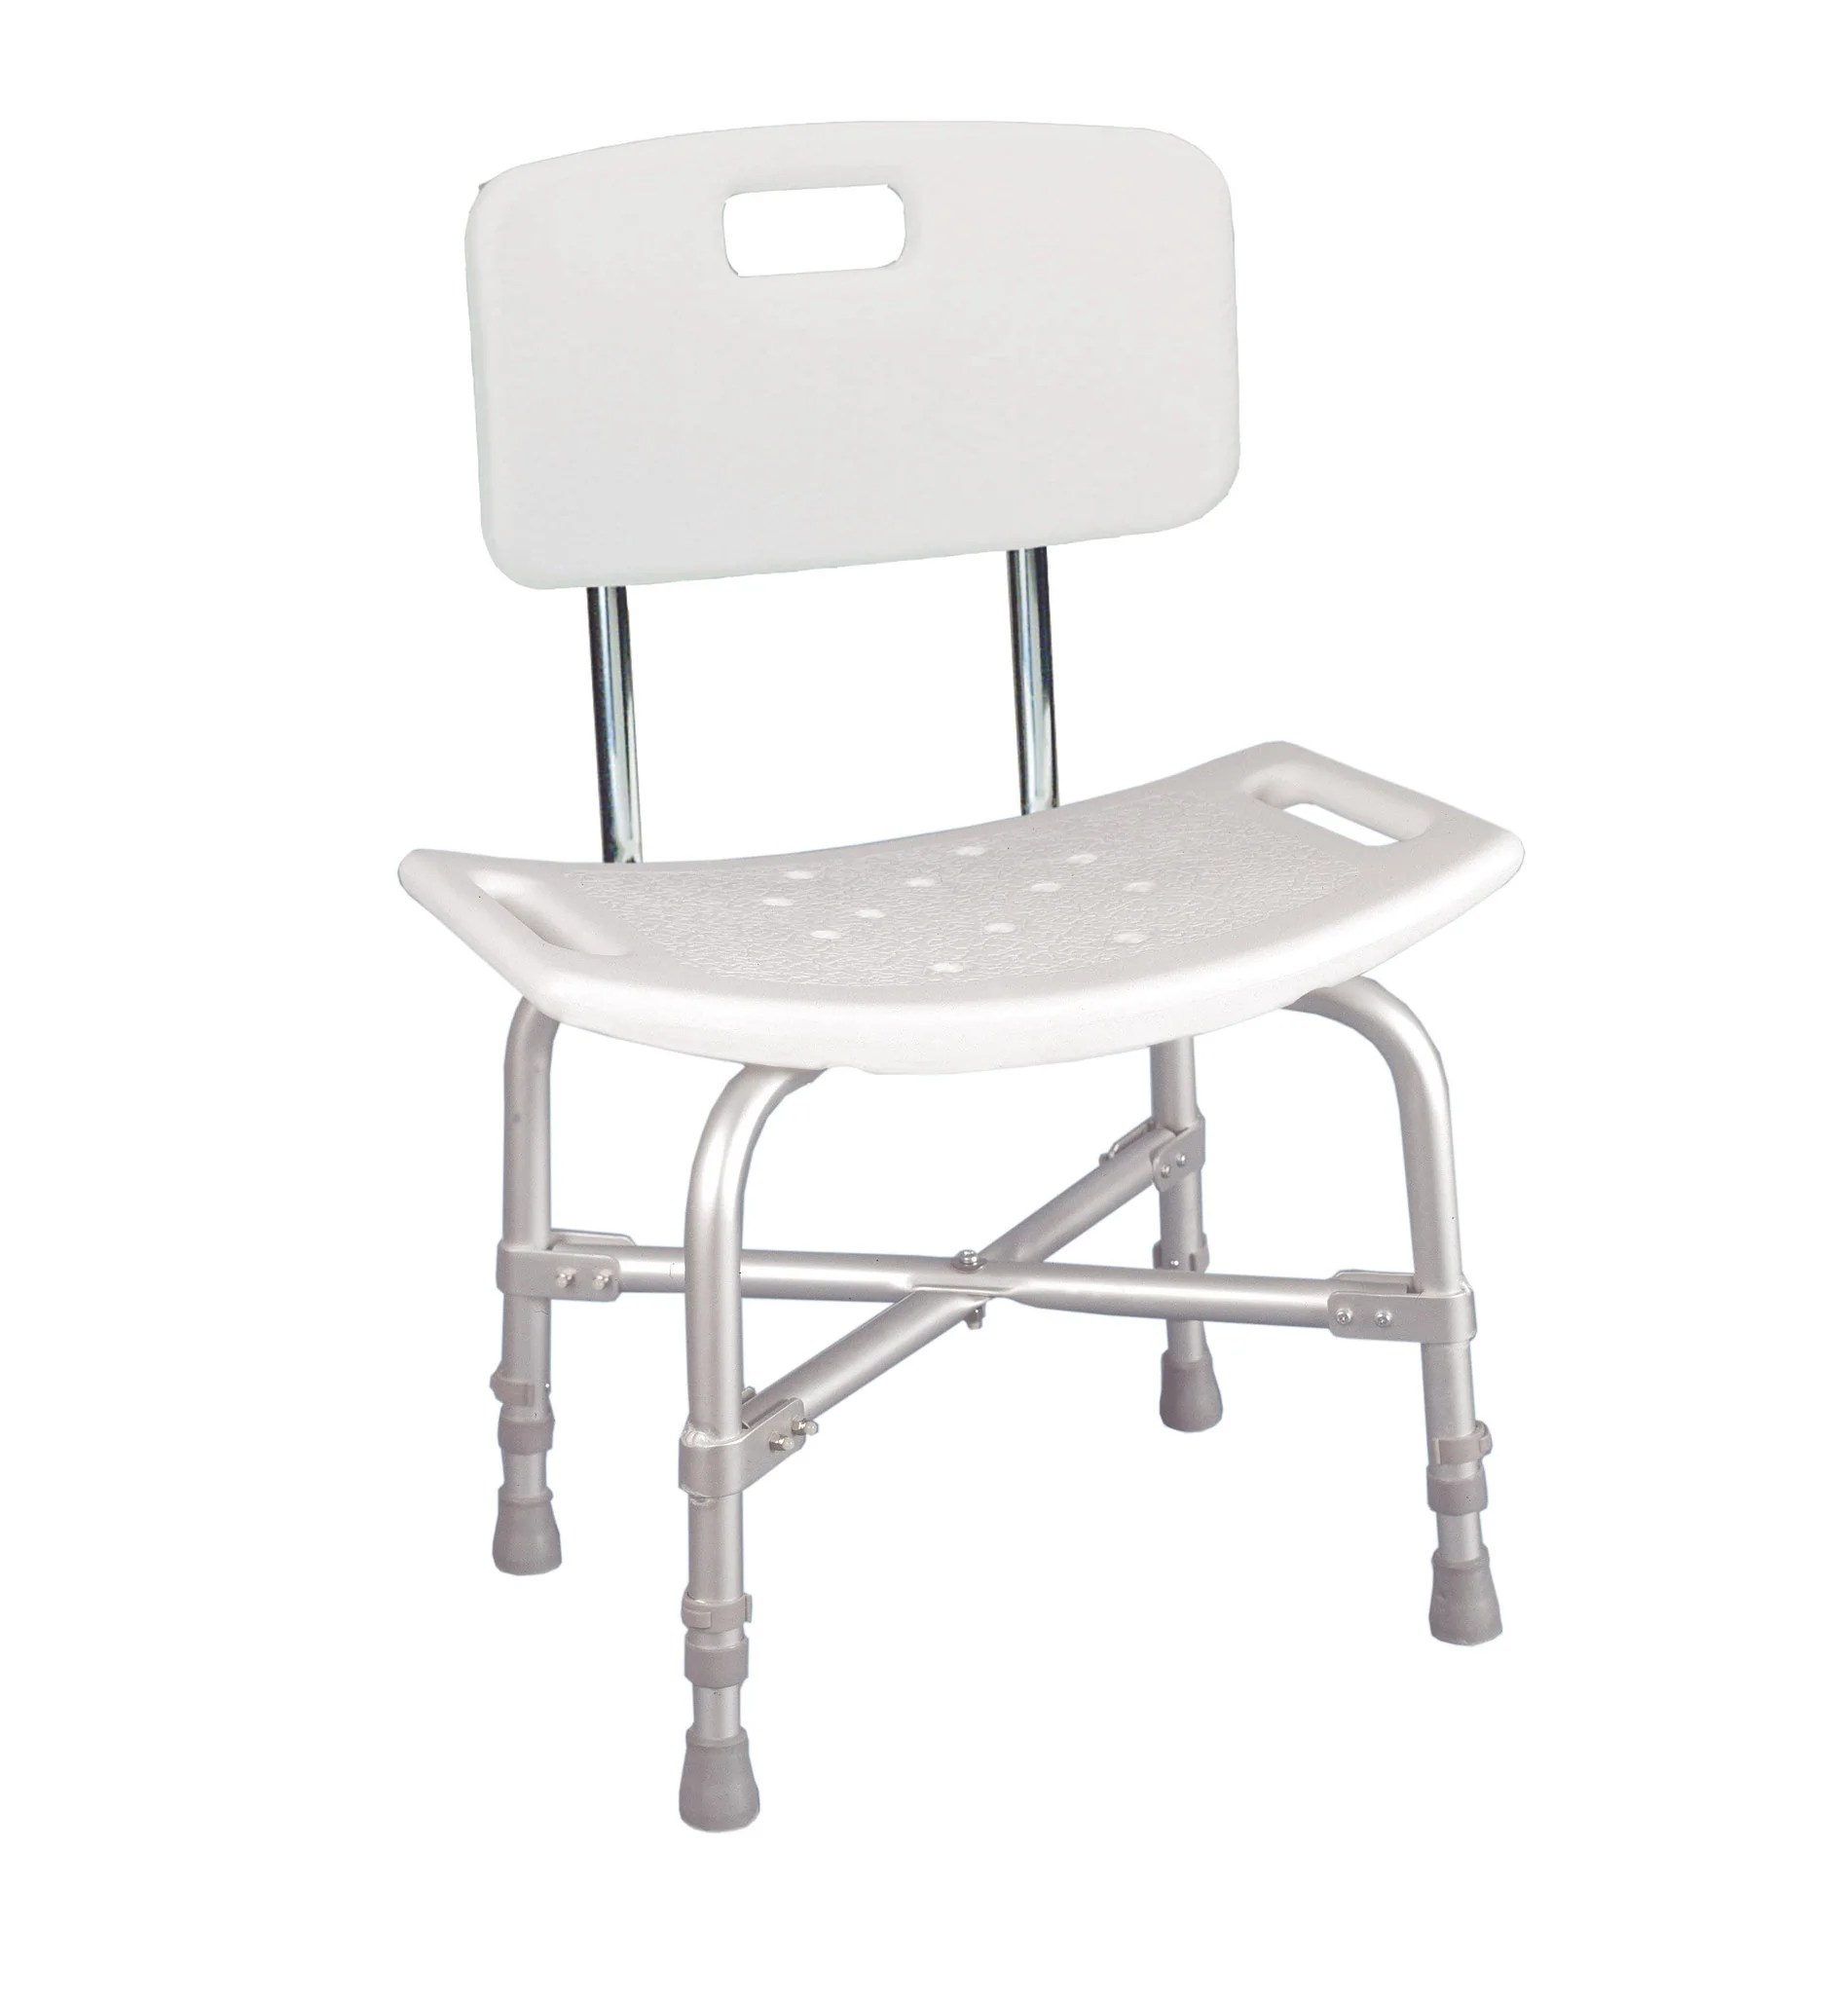 drive shower chair parts cafe table and chairs outdoor bariatric heavy duty bath bench with backrest by